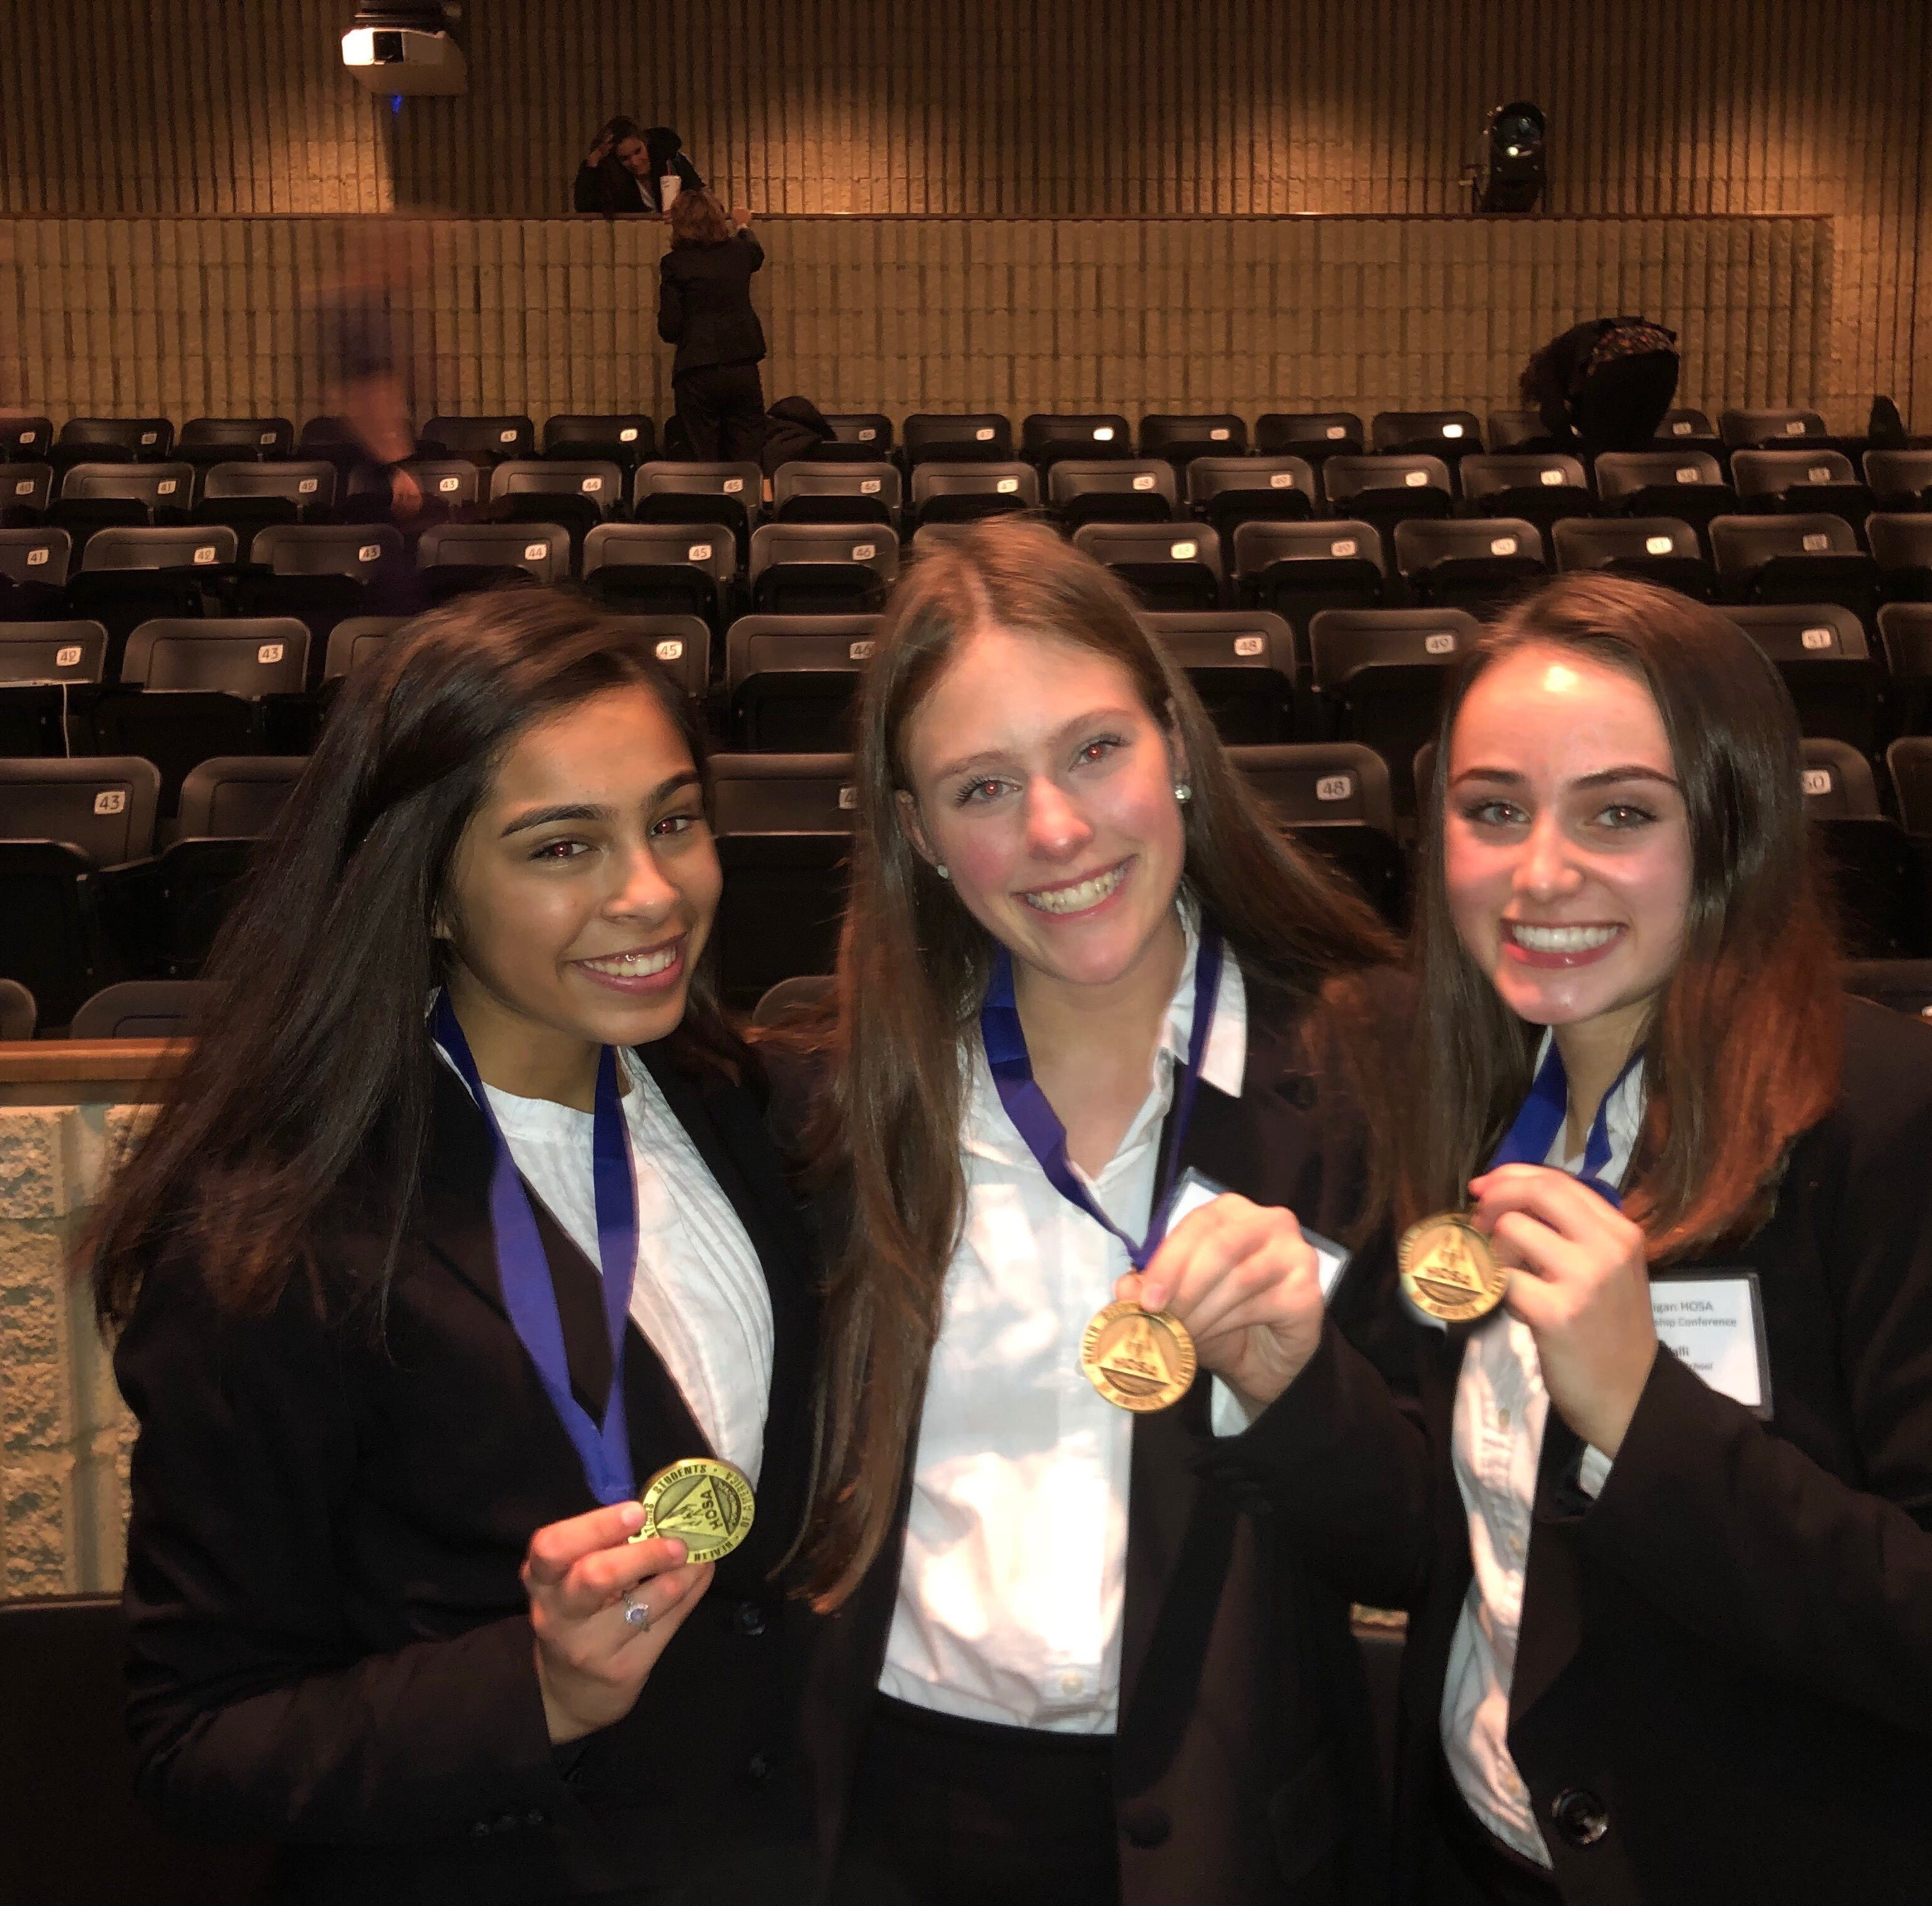 Students' suicide awareness presentation wins HOSA regional competition